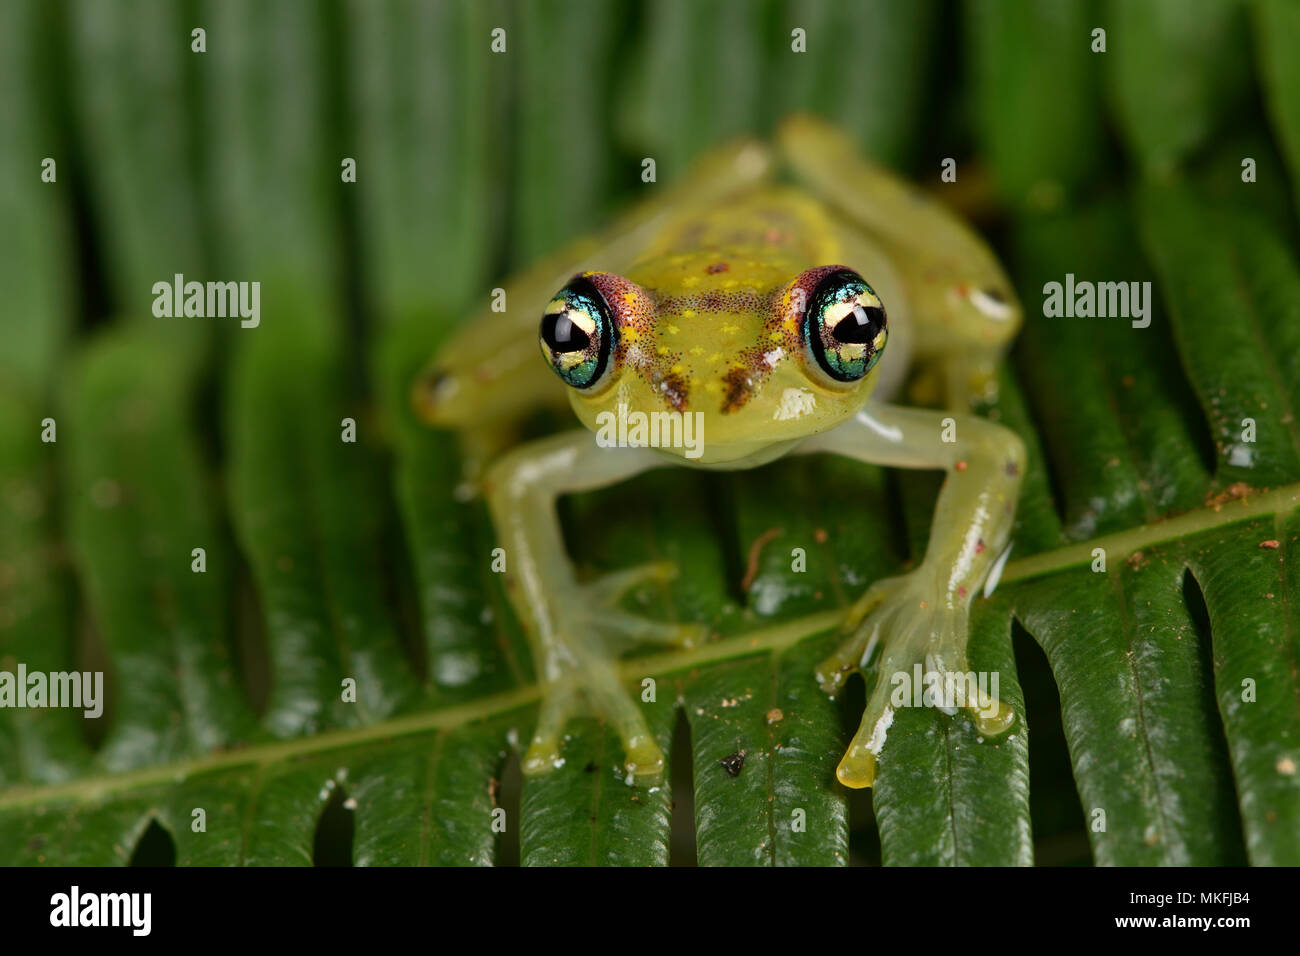 Central Bright-eyed Frog (Boophis rappiodes), Andasibe, Perinet, Alaotra-Mangoro Region, Madagascar - Stock Image